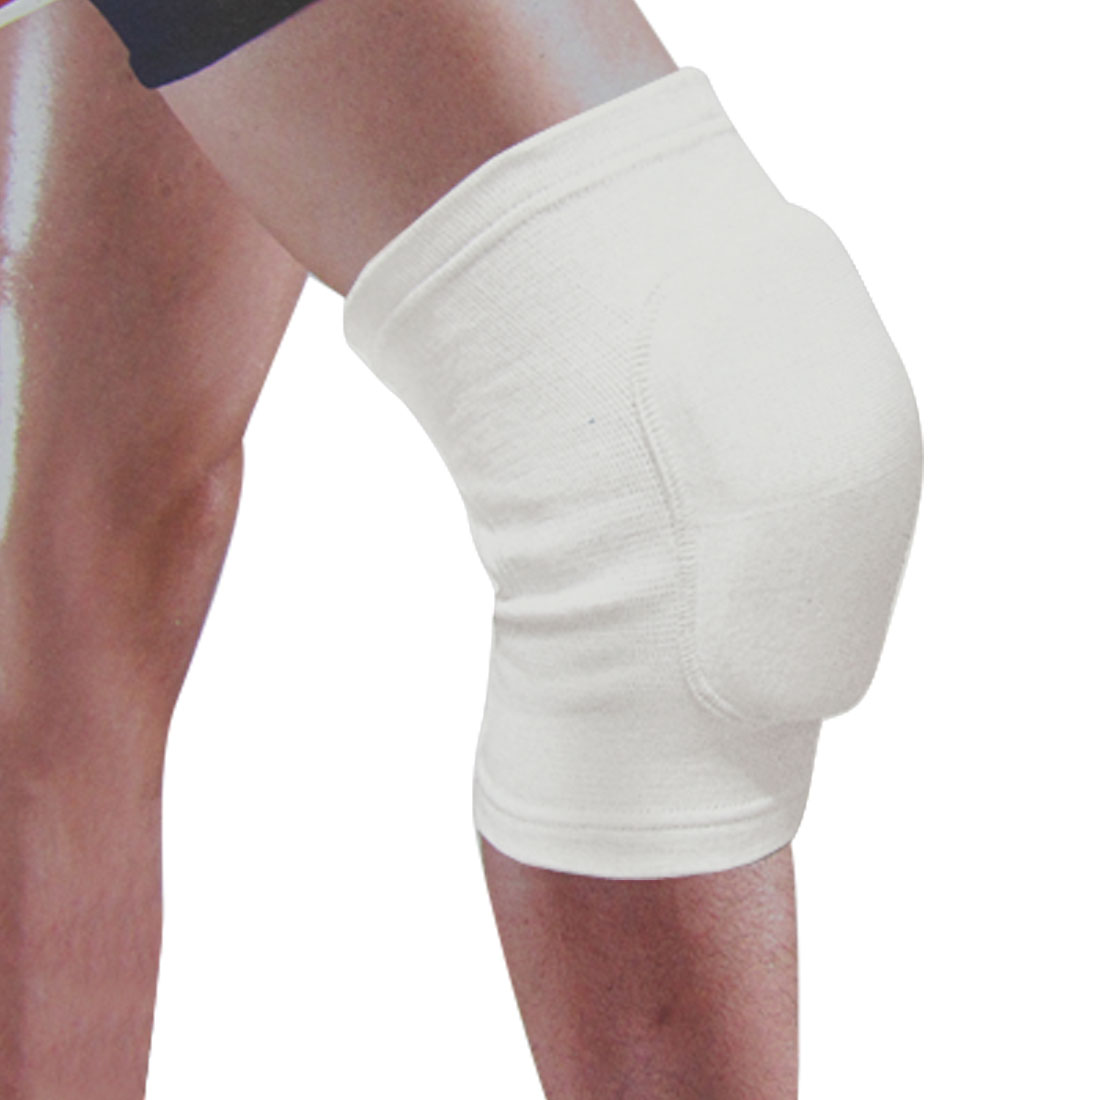 Adult Sports Cotton Stretchy Support Sports Knee Protector Brace White